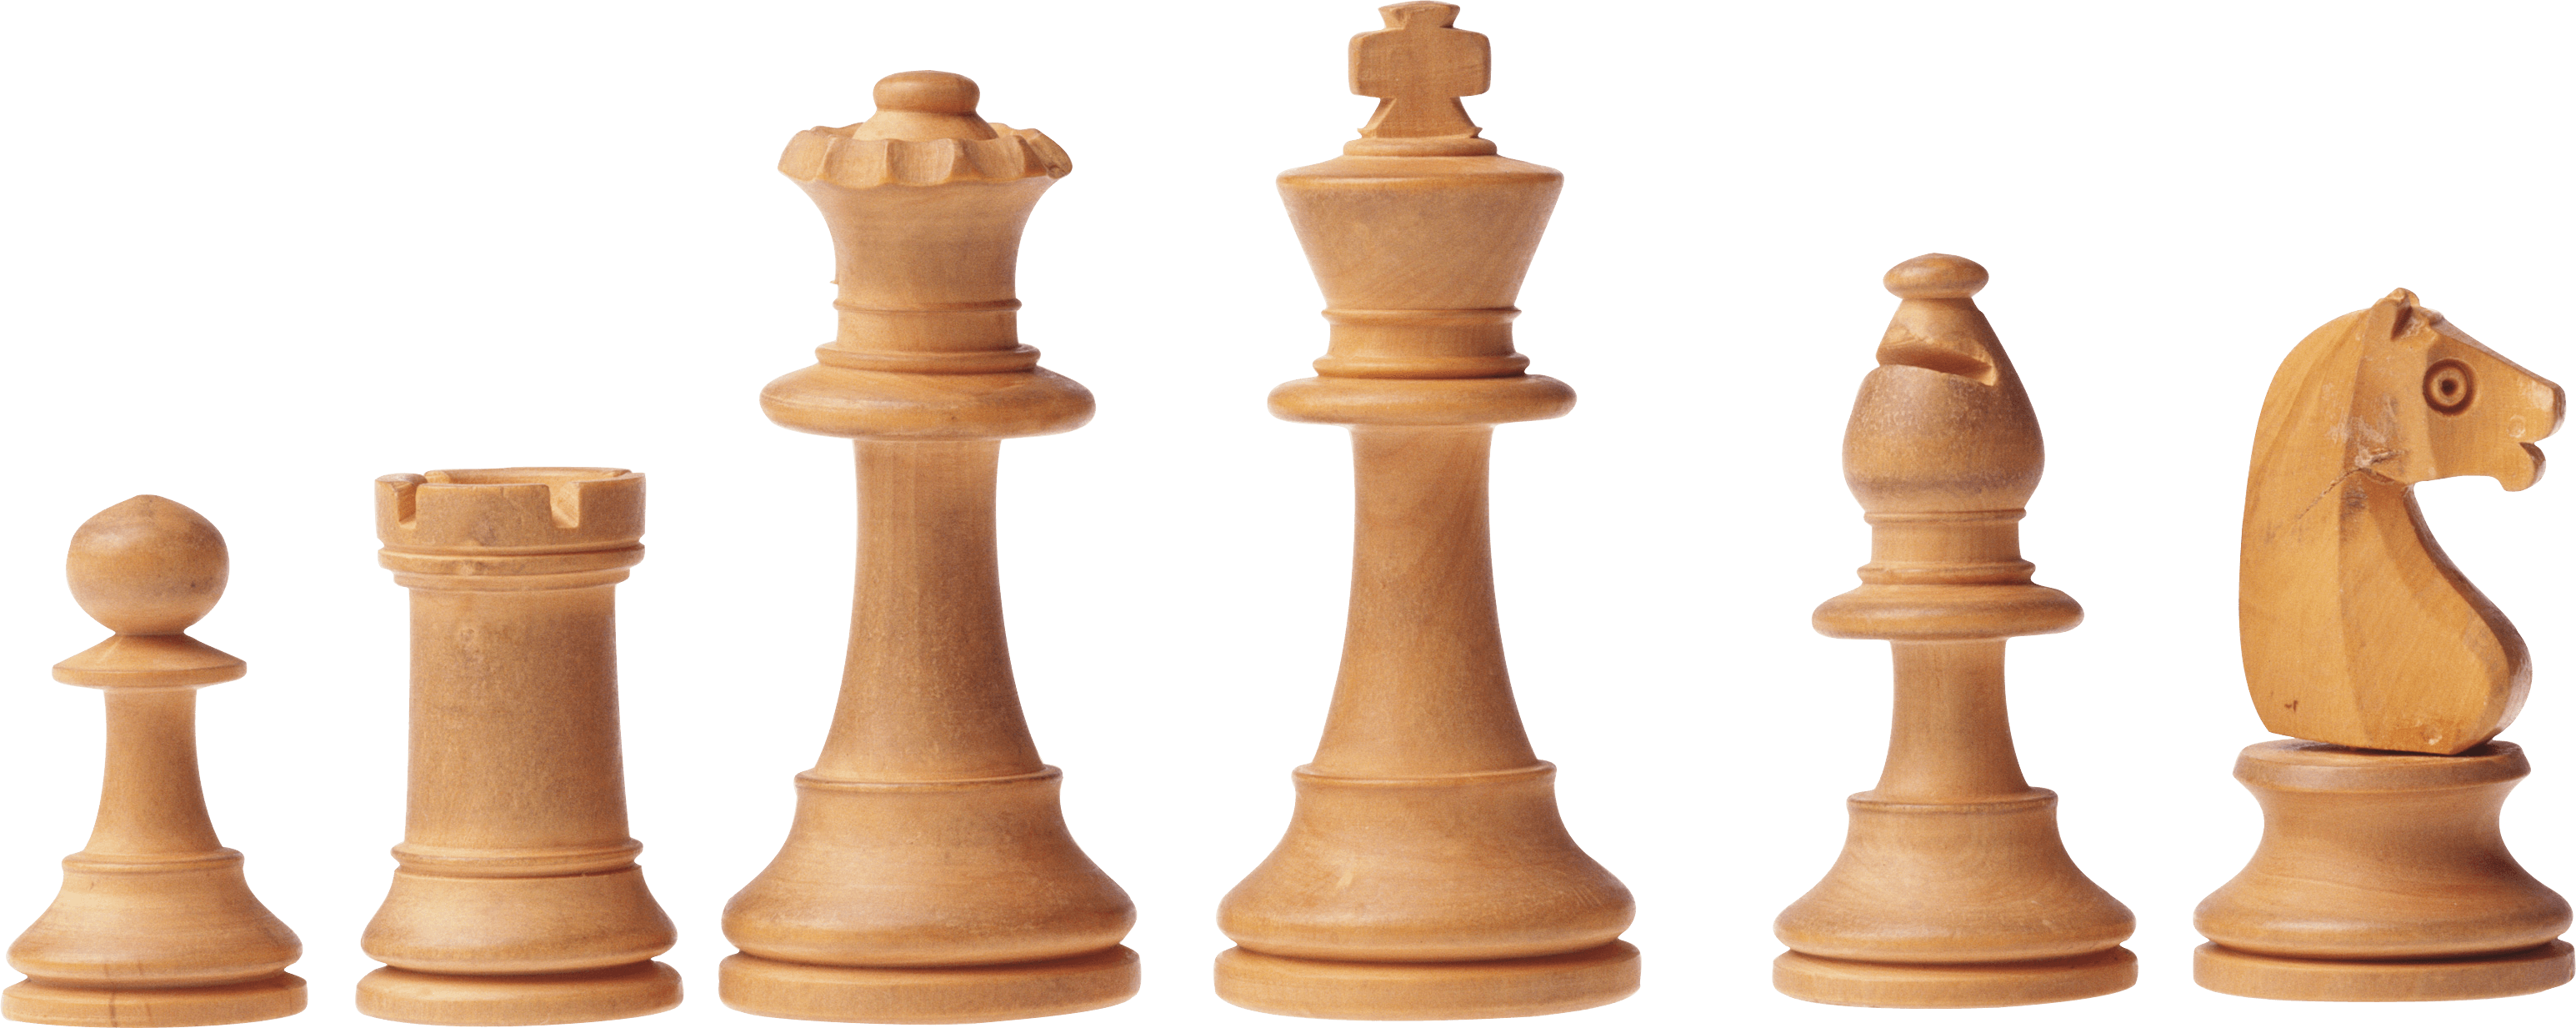 chess sports transparent background #39300